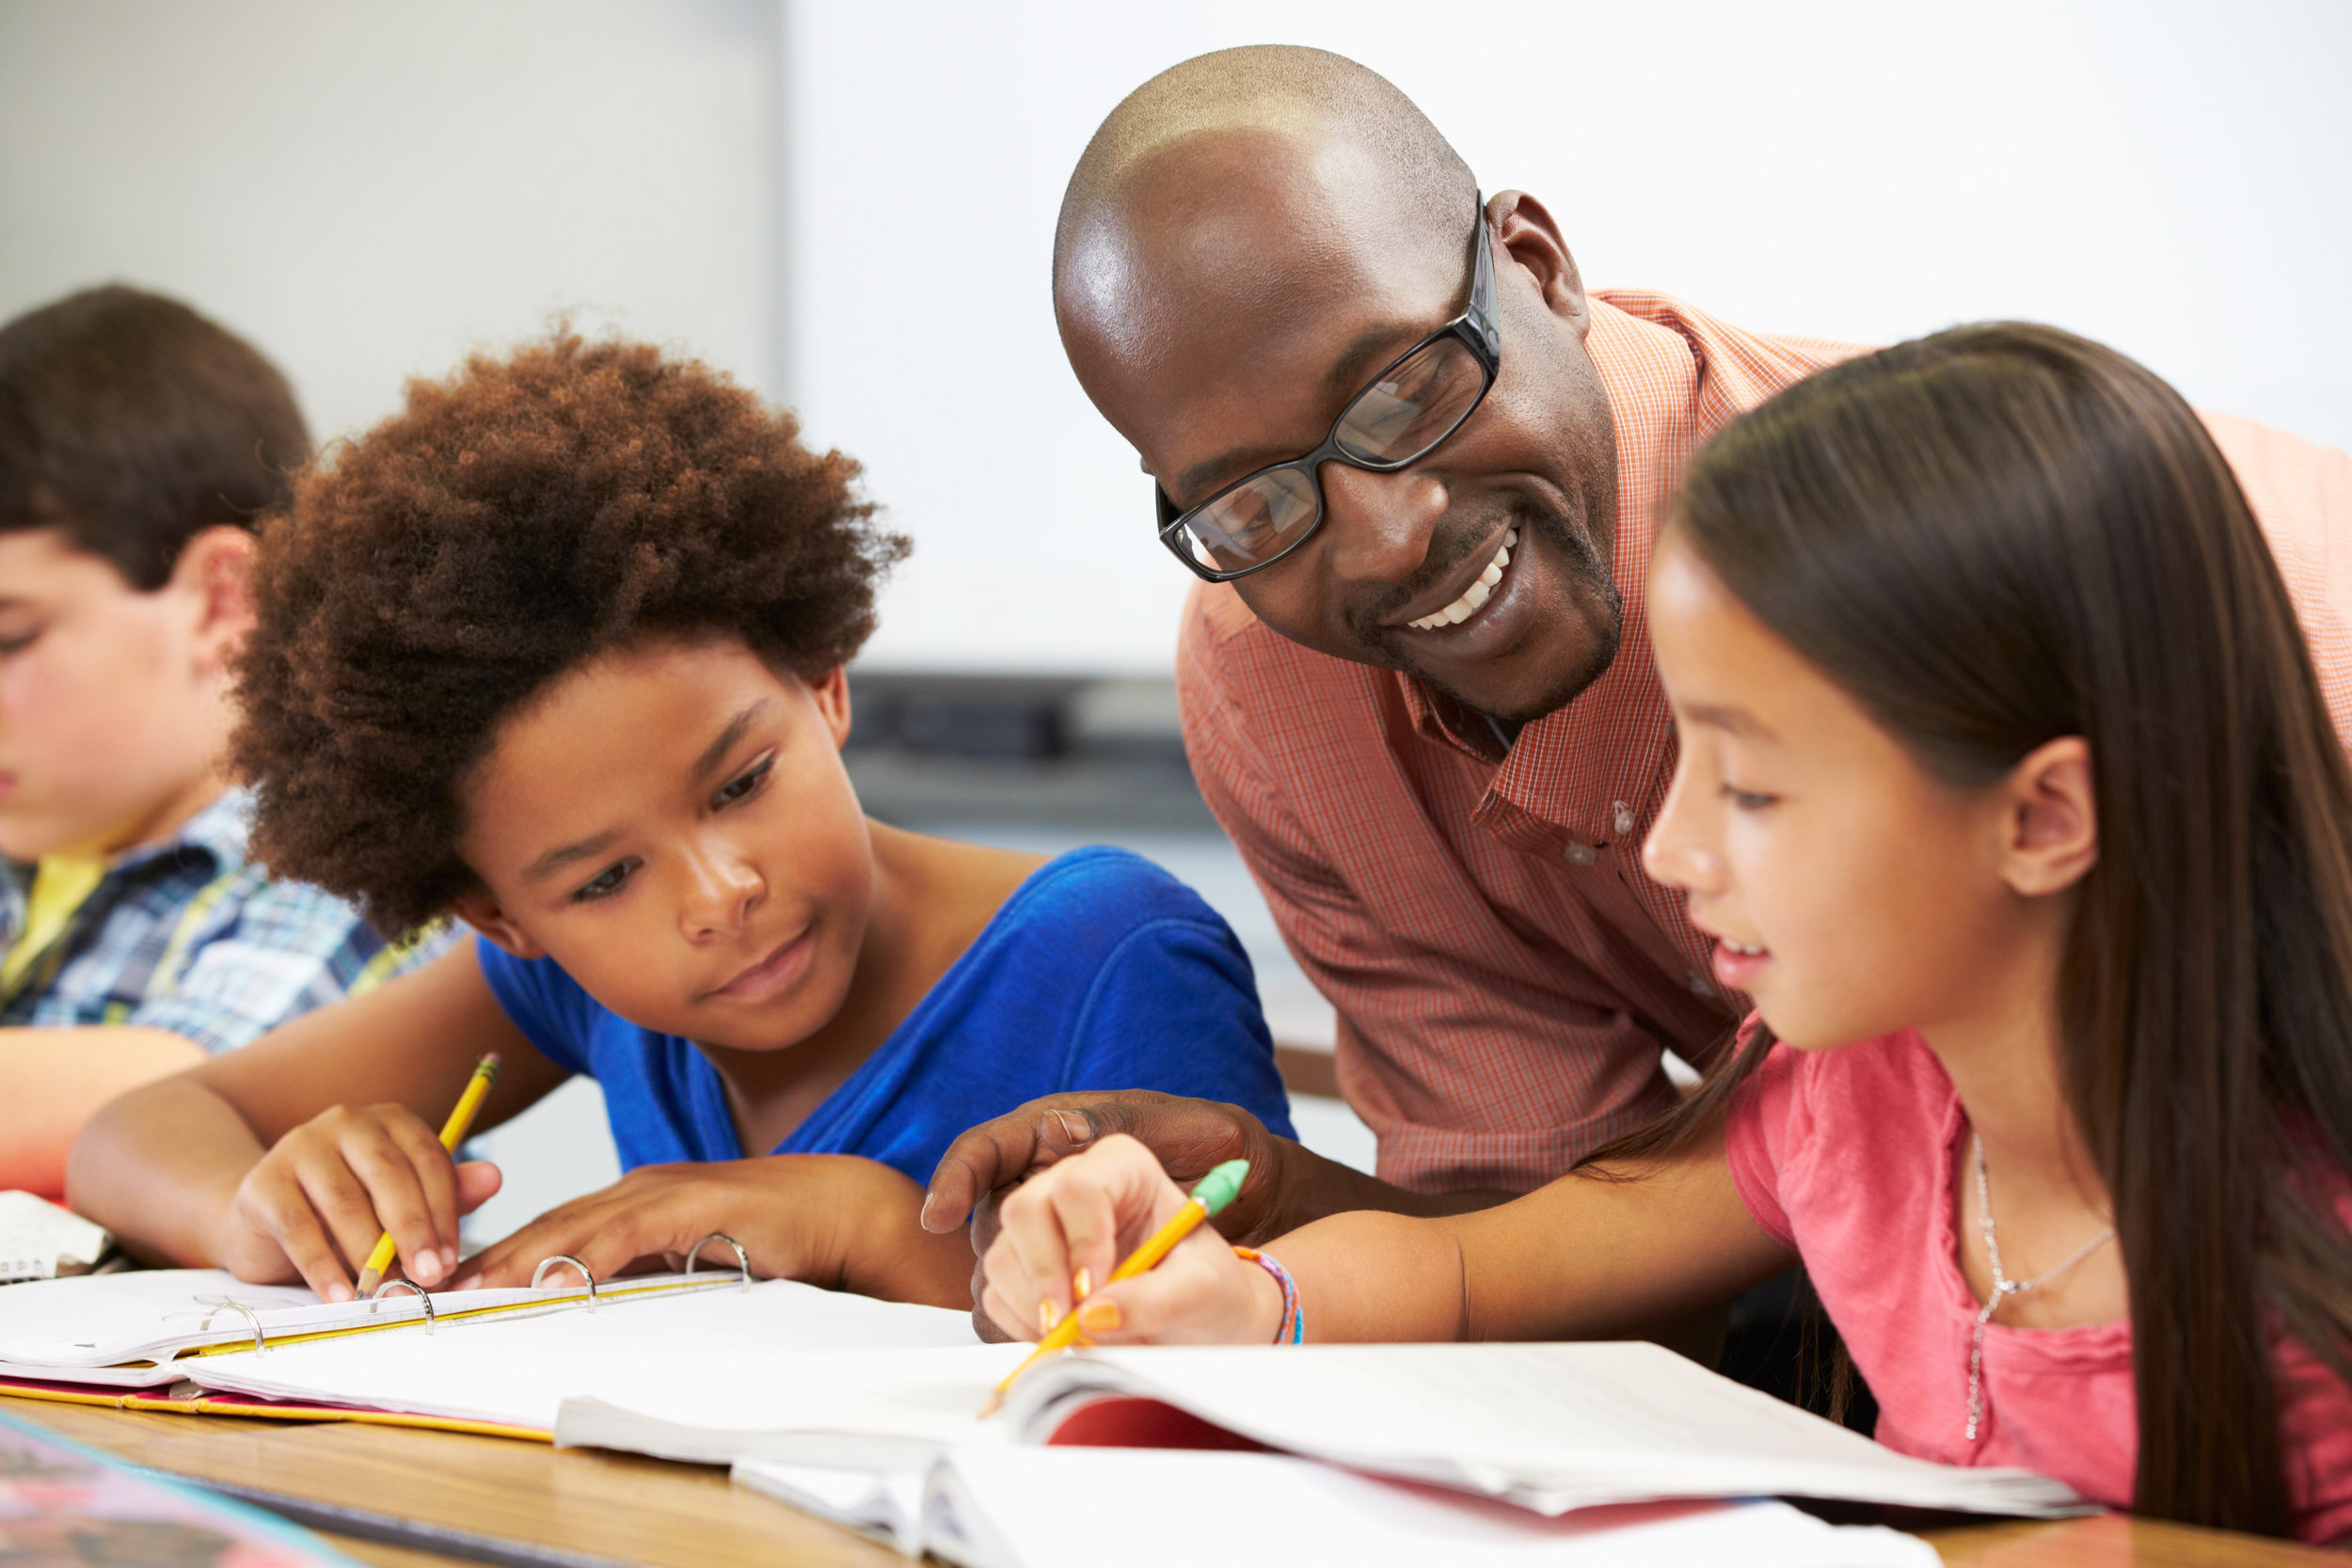 Male teacher assisting two young girls with school work.